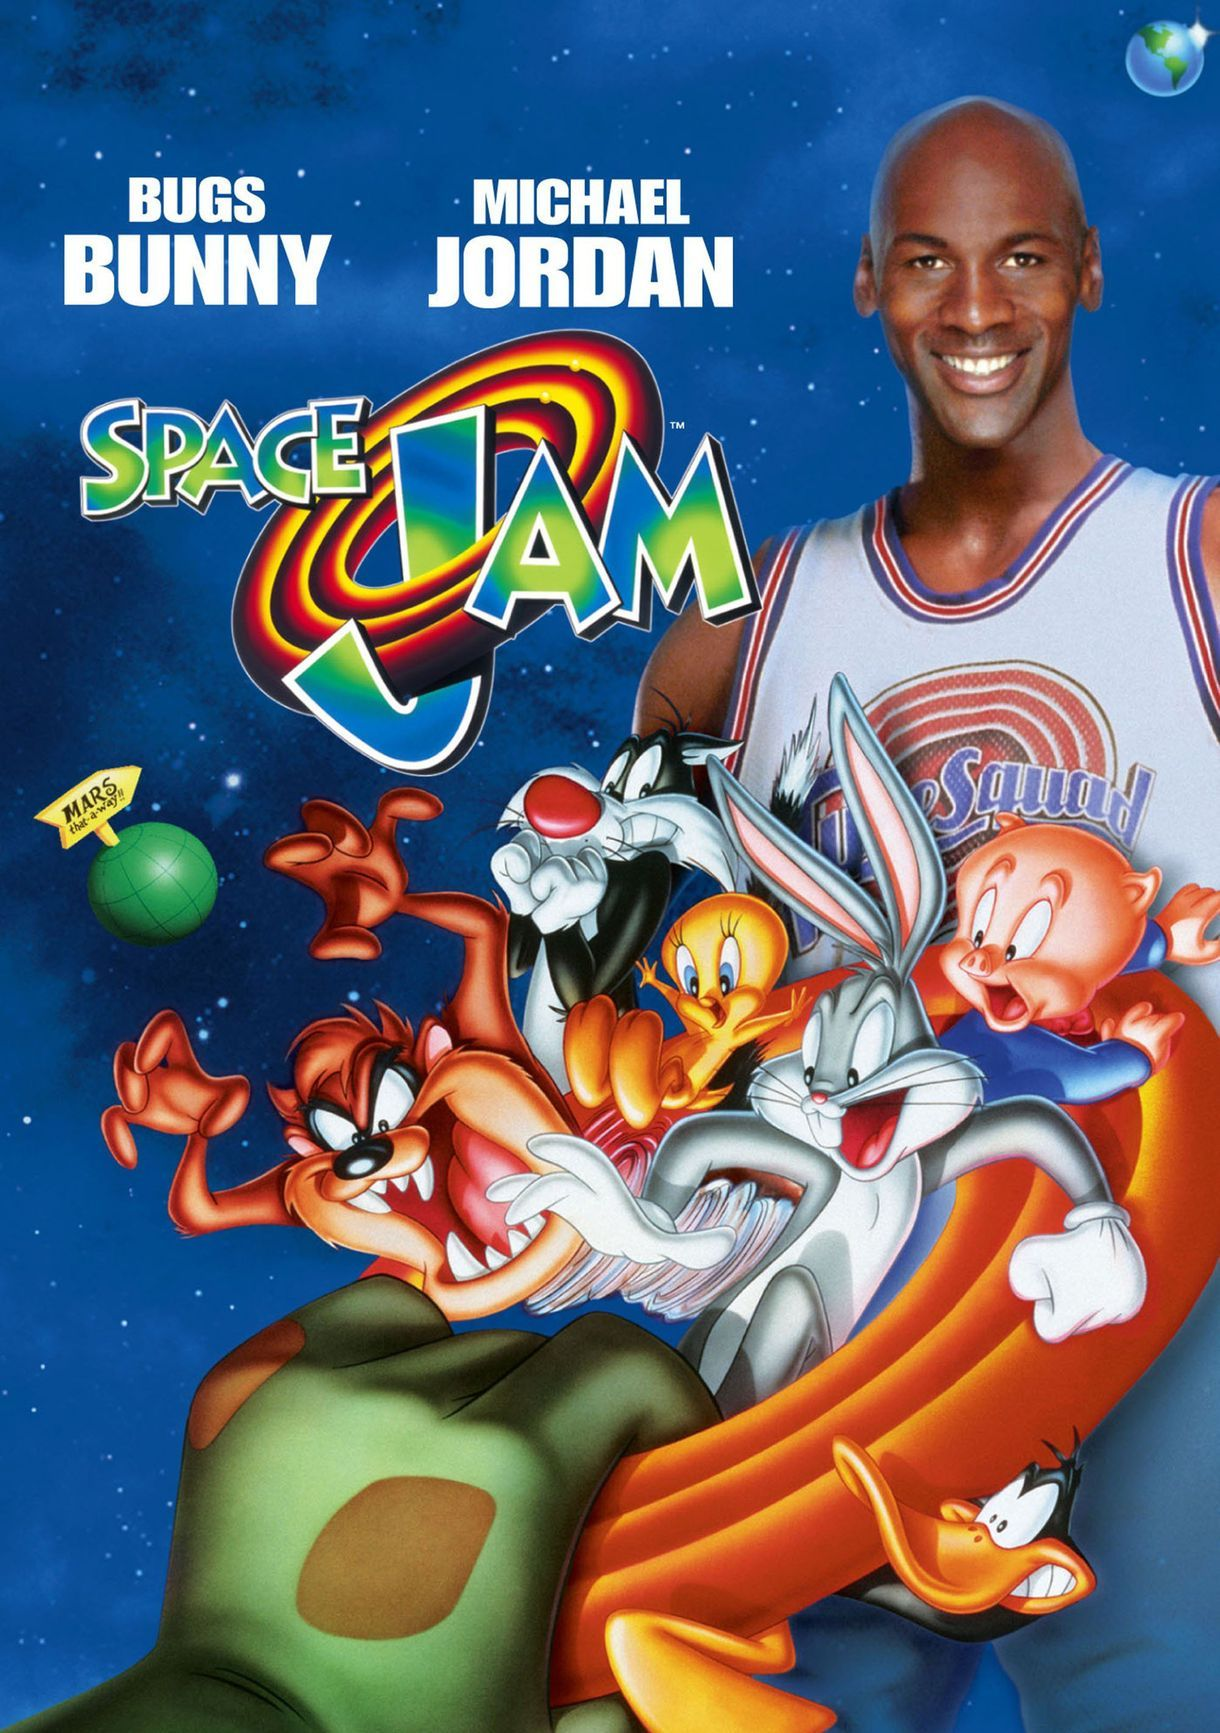 Pin by 90s Baby 00s Kid on 90s Movies | Space jam, Vhs movie